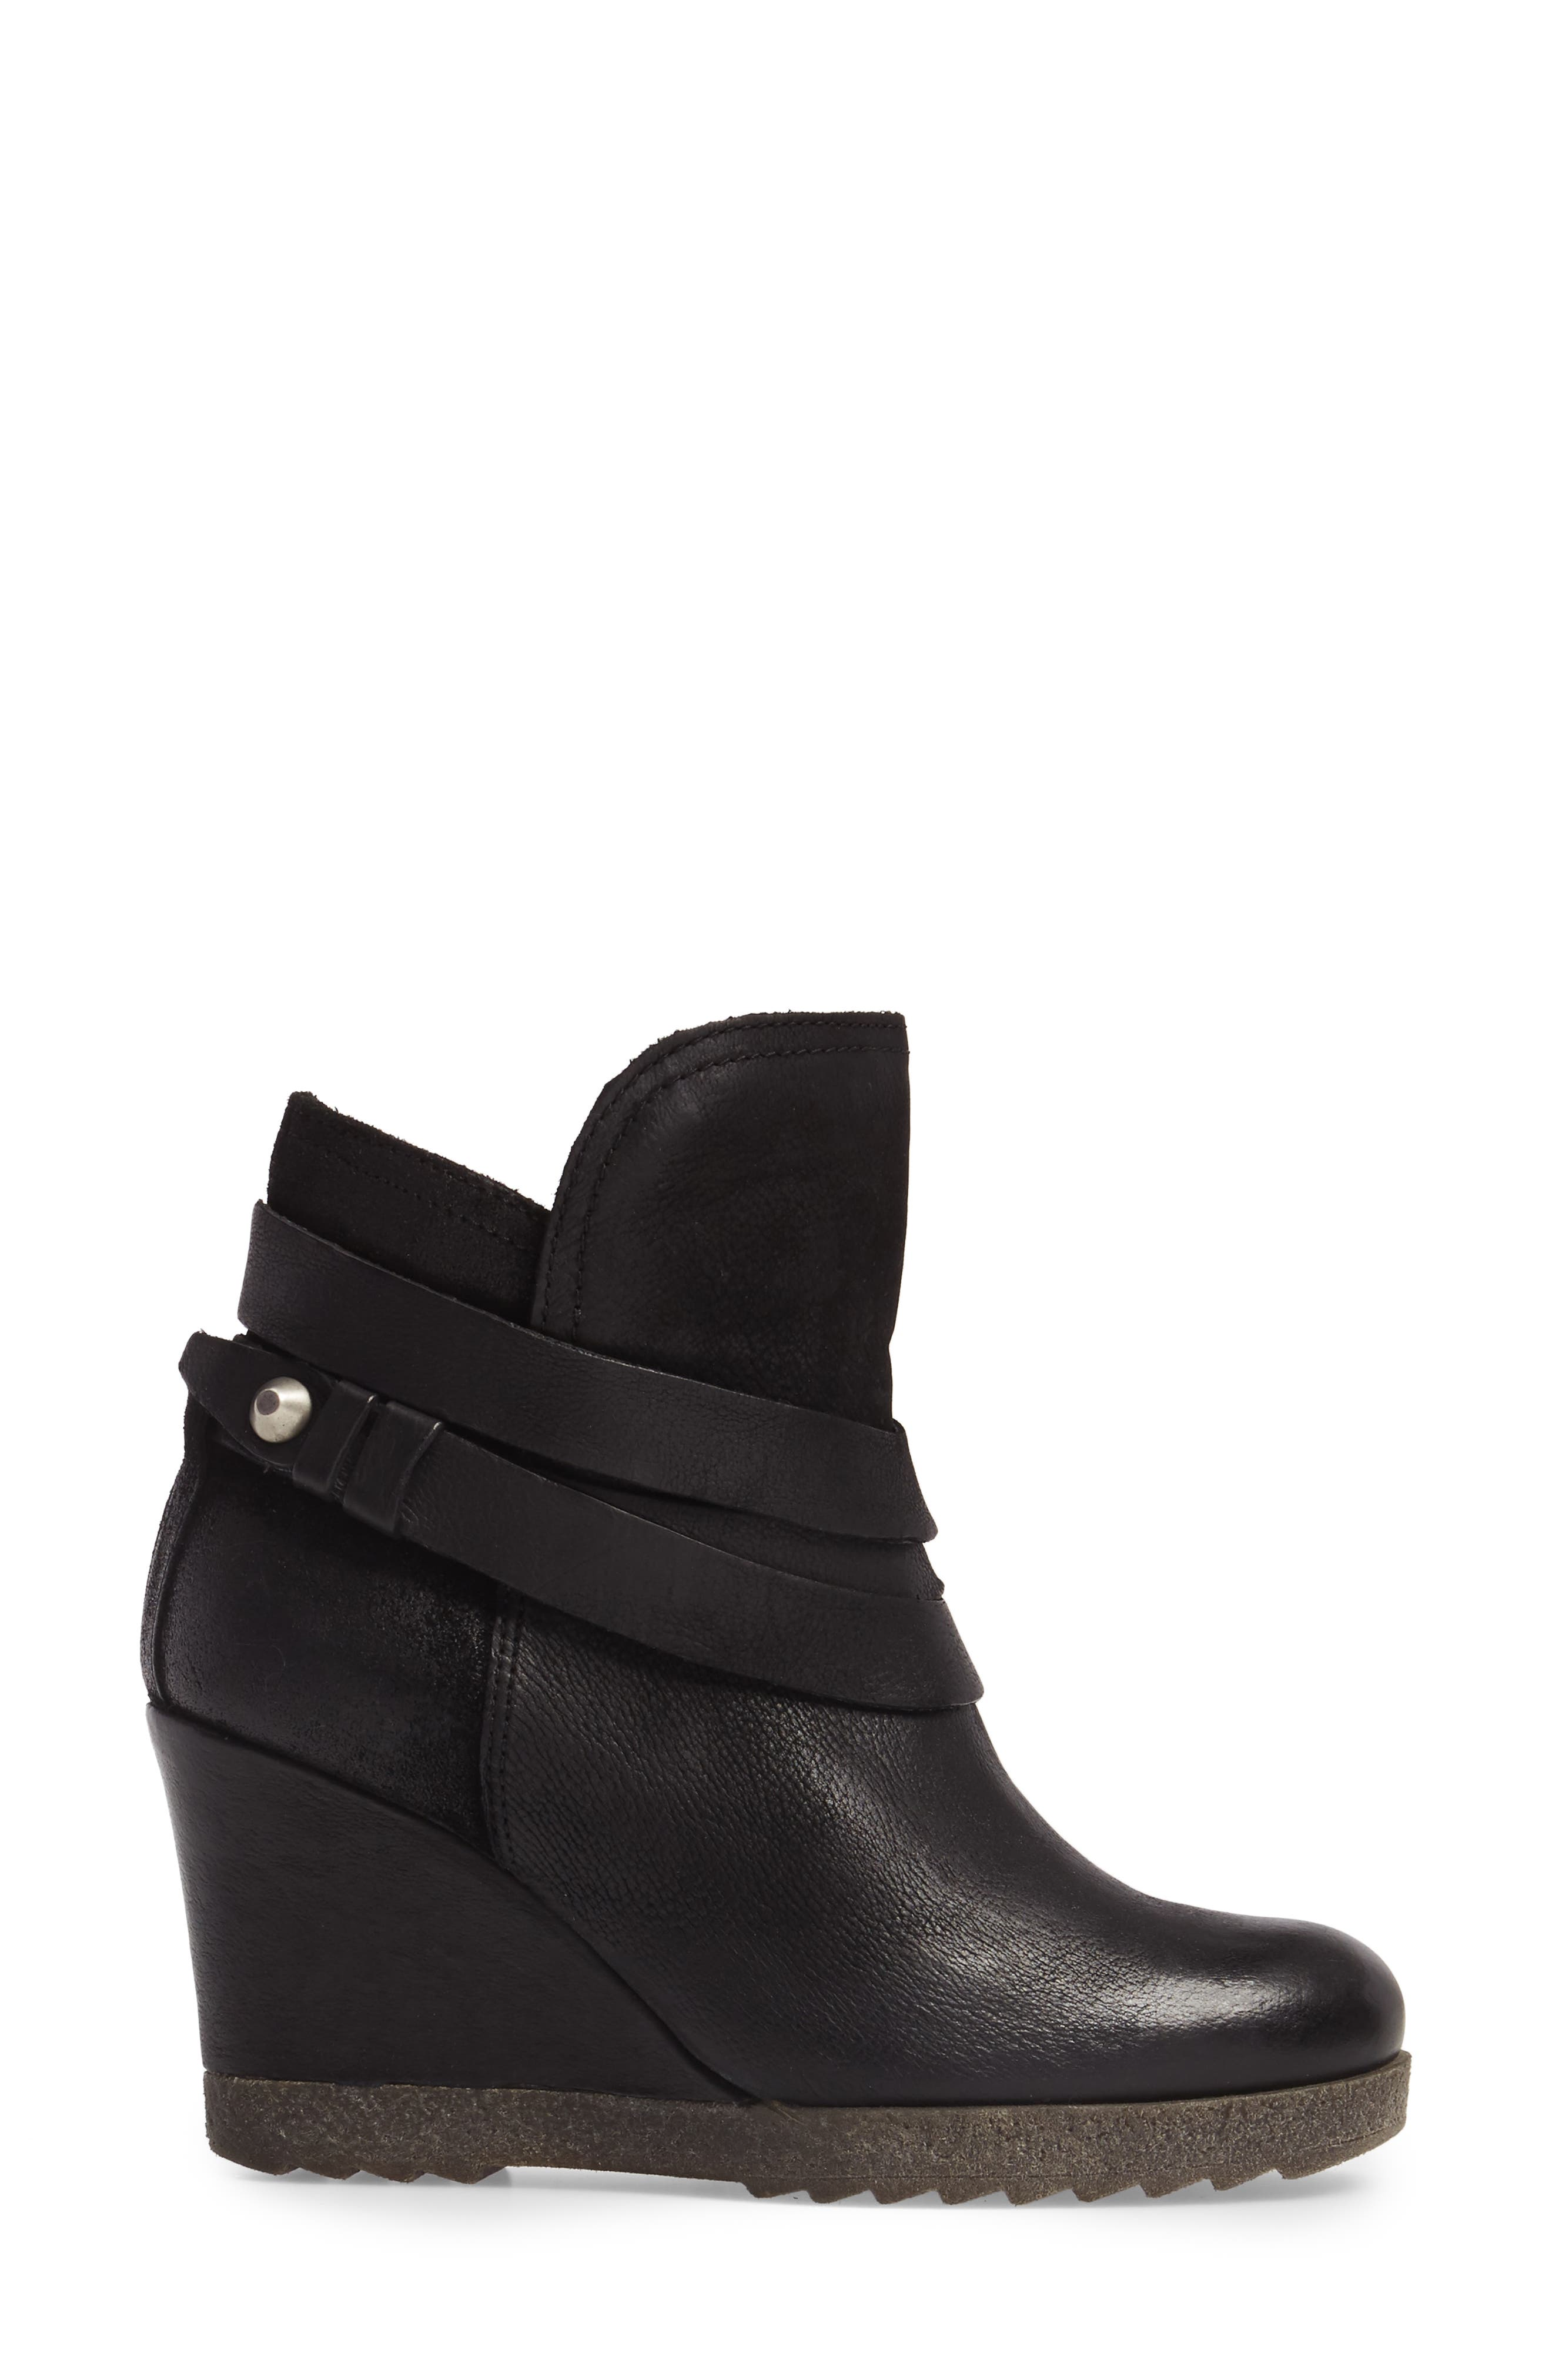 Narcissa Ankle Wrap Wedge Bootie,                             Alternate thumbnail 3, color,                             001